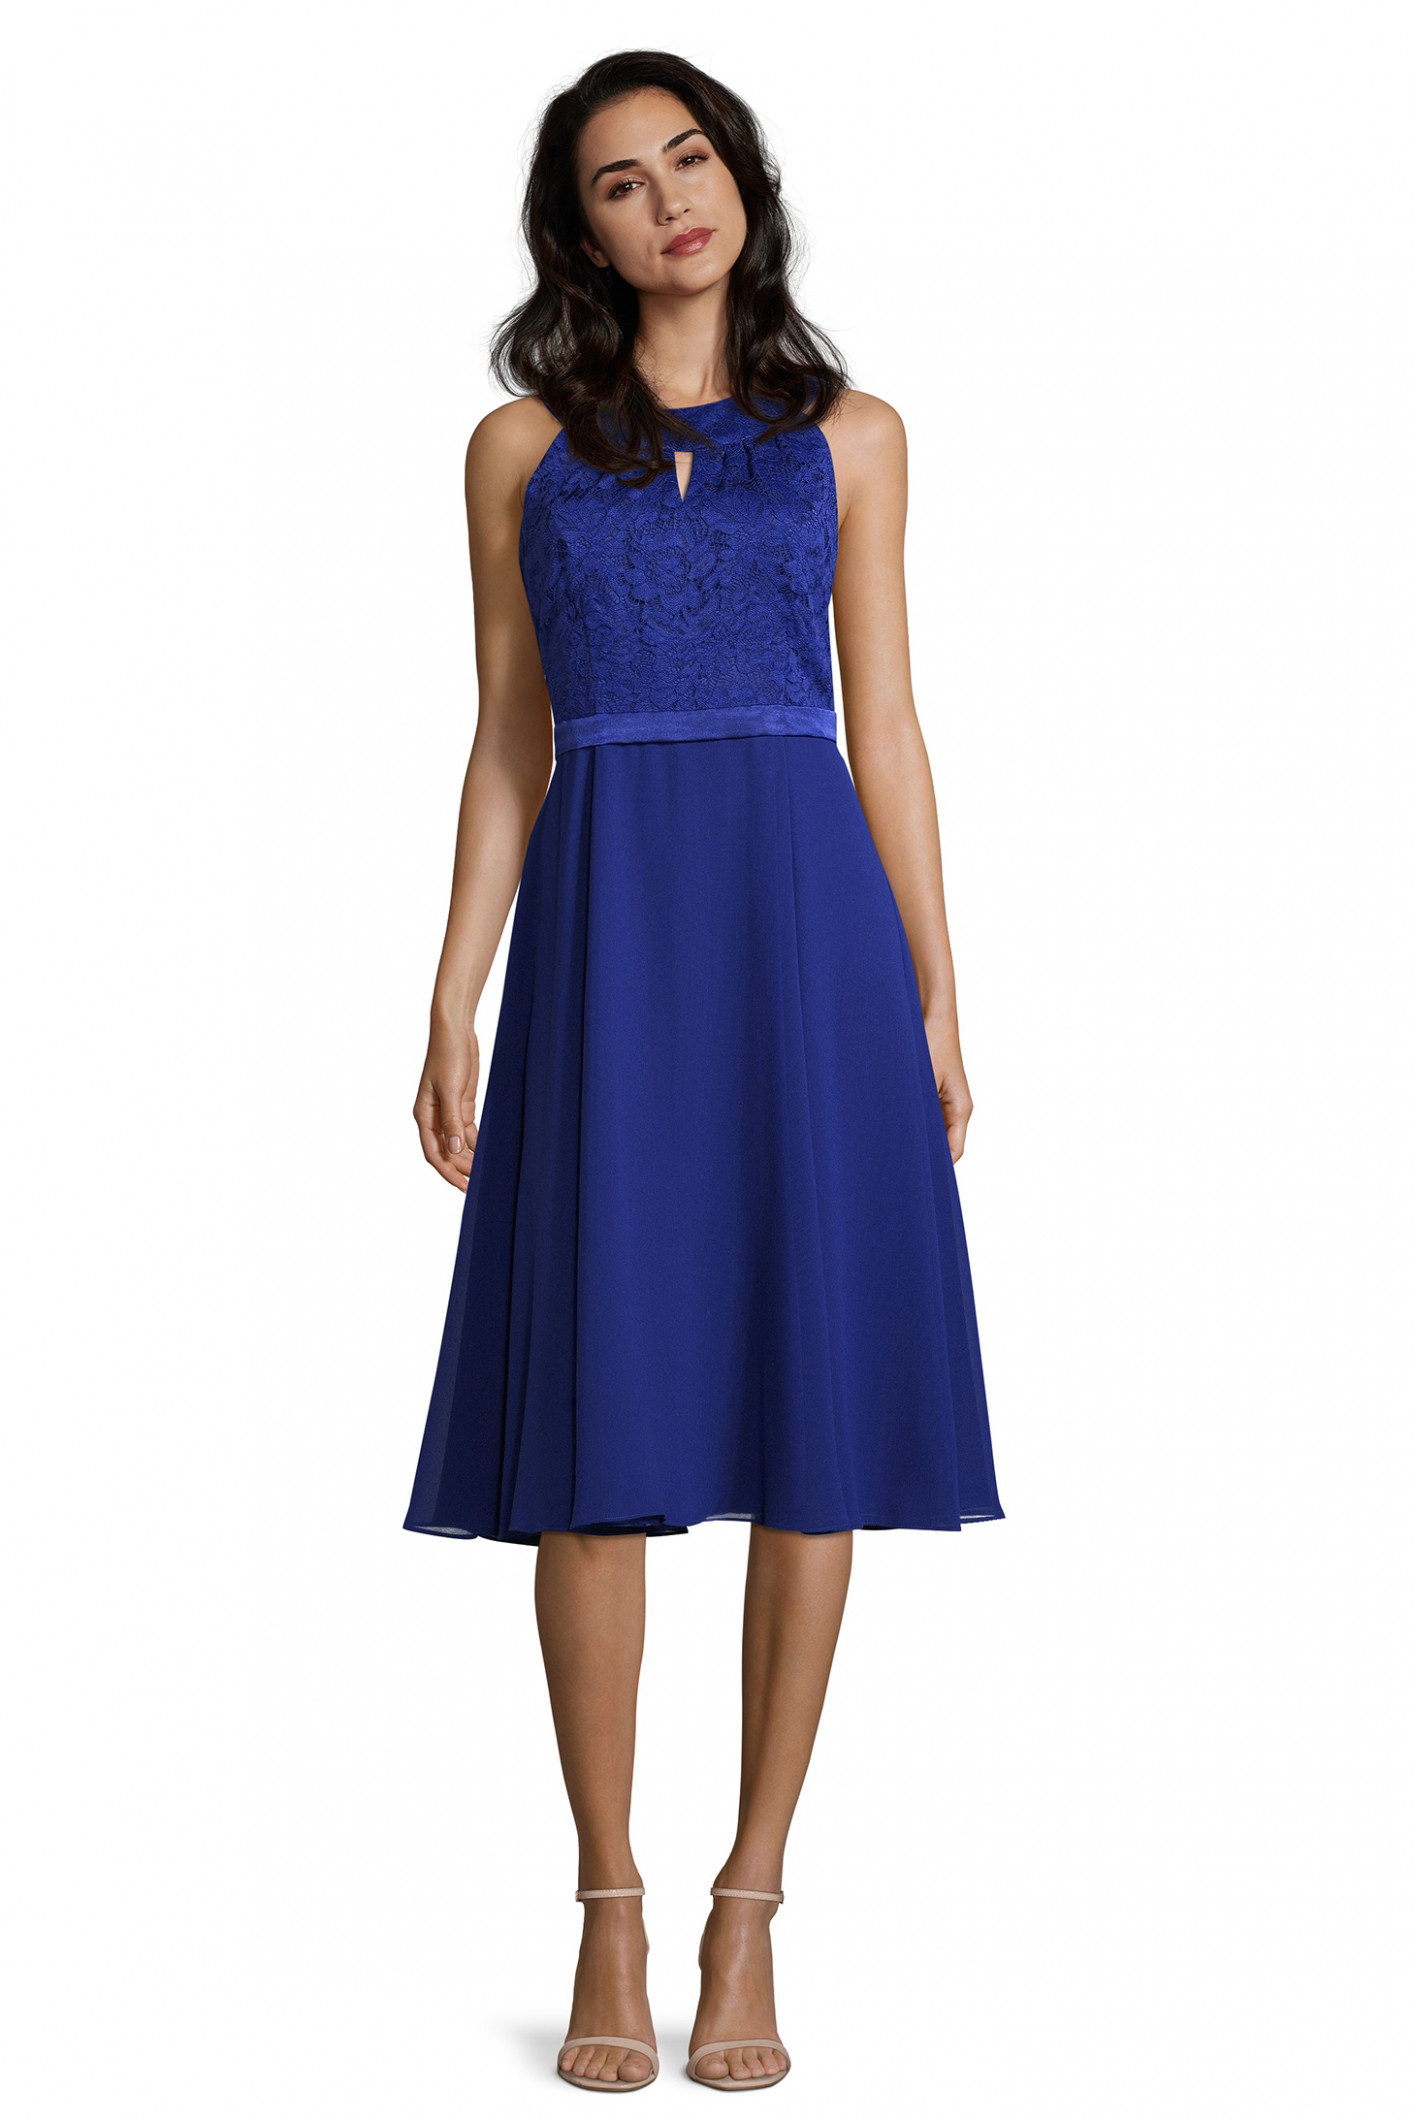 cocktailkleid in blau blaues cocktailkleid